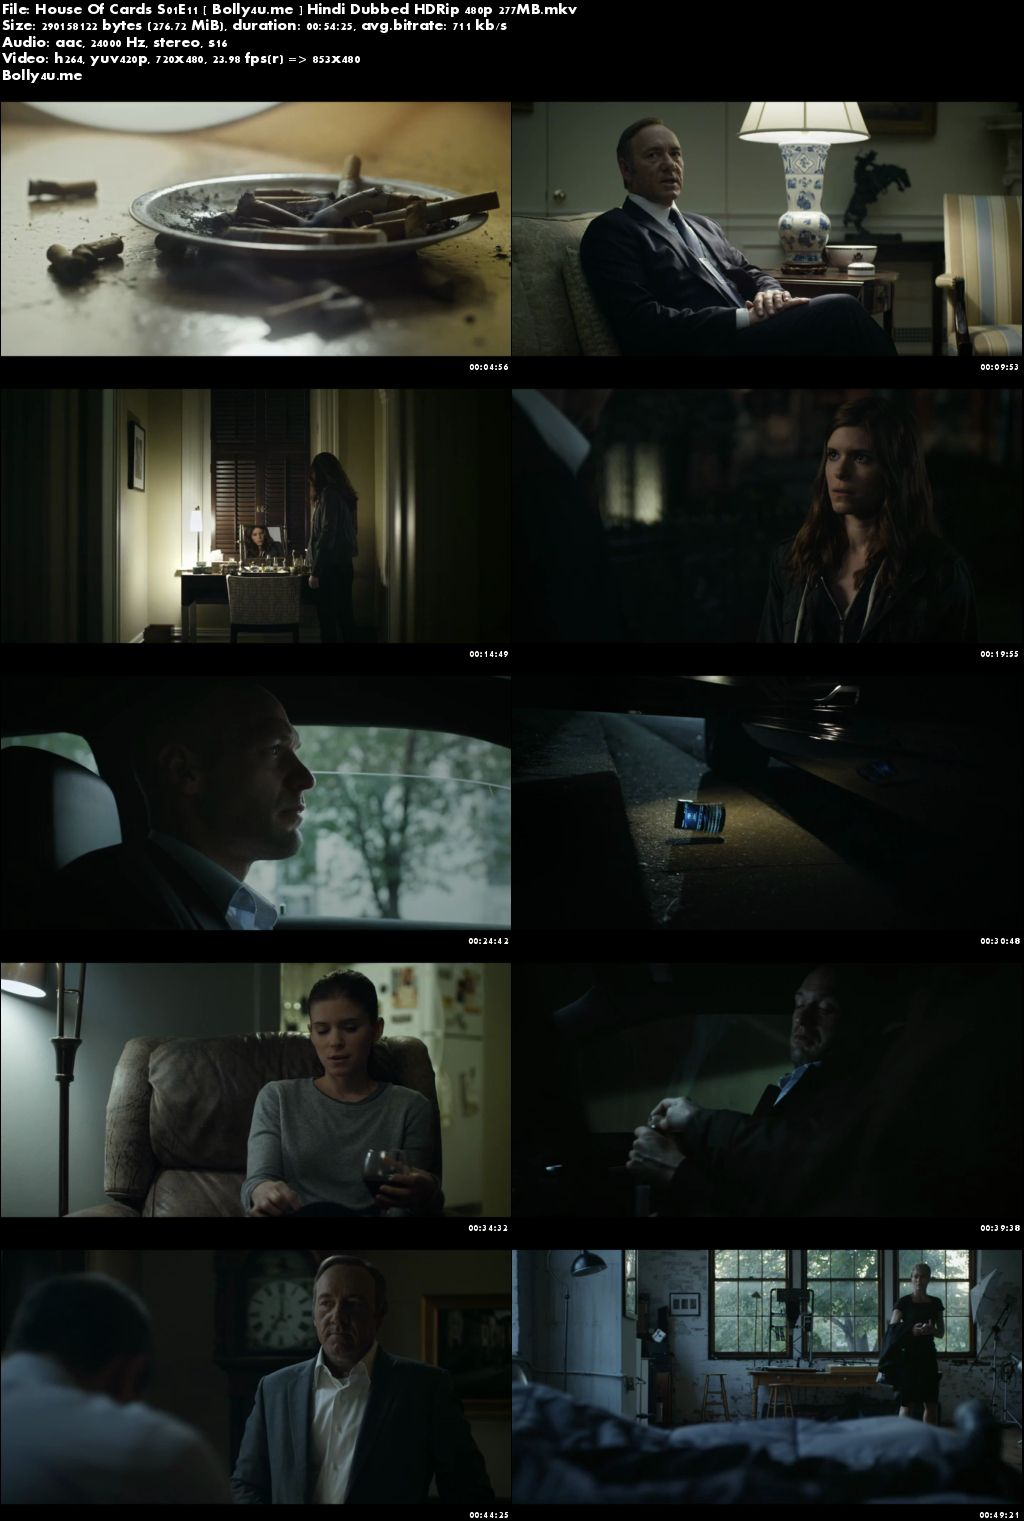 House Of Cards S01E11 HDRip 250MB Hindi Dubbed 480p Download